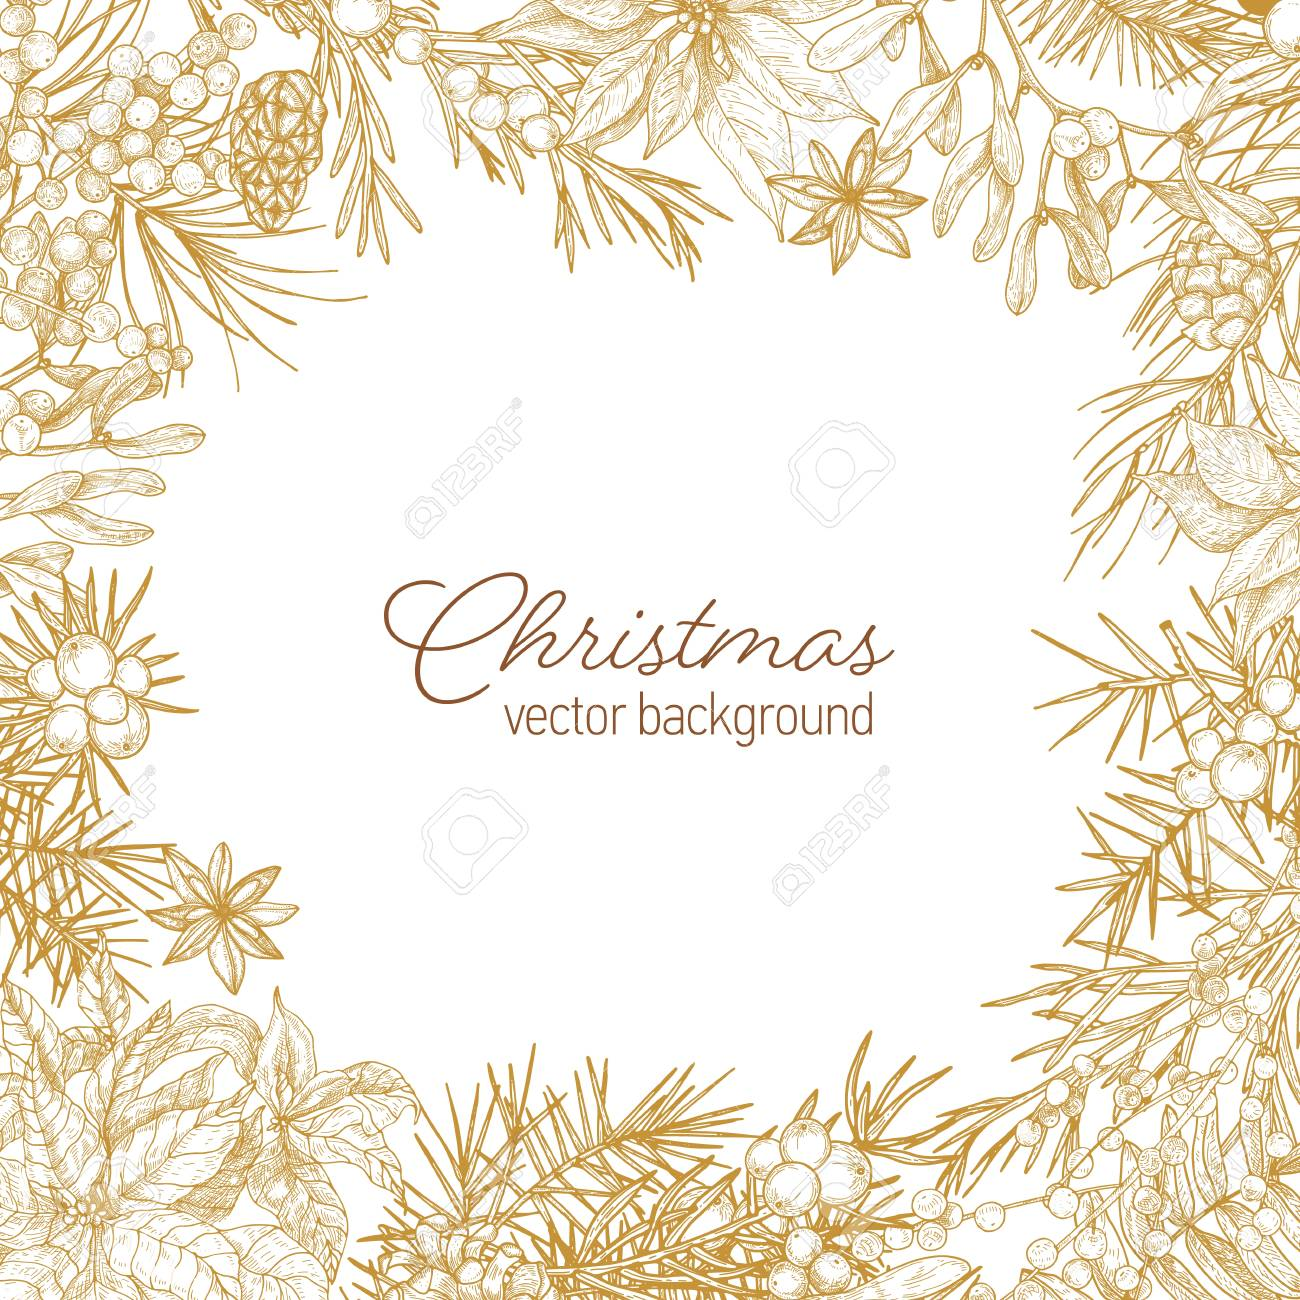 Vintage frame made of coniferous branches and cones, poinsettia leaves, juniper and mistletoe berries hand drawn with contour lines on white background and Merry Christmas wish. Vector illustration - 117296567